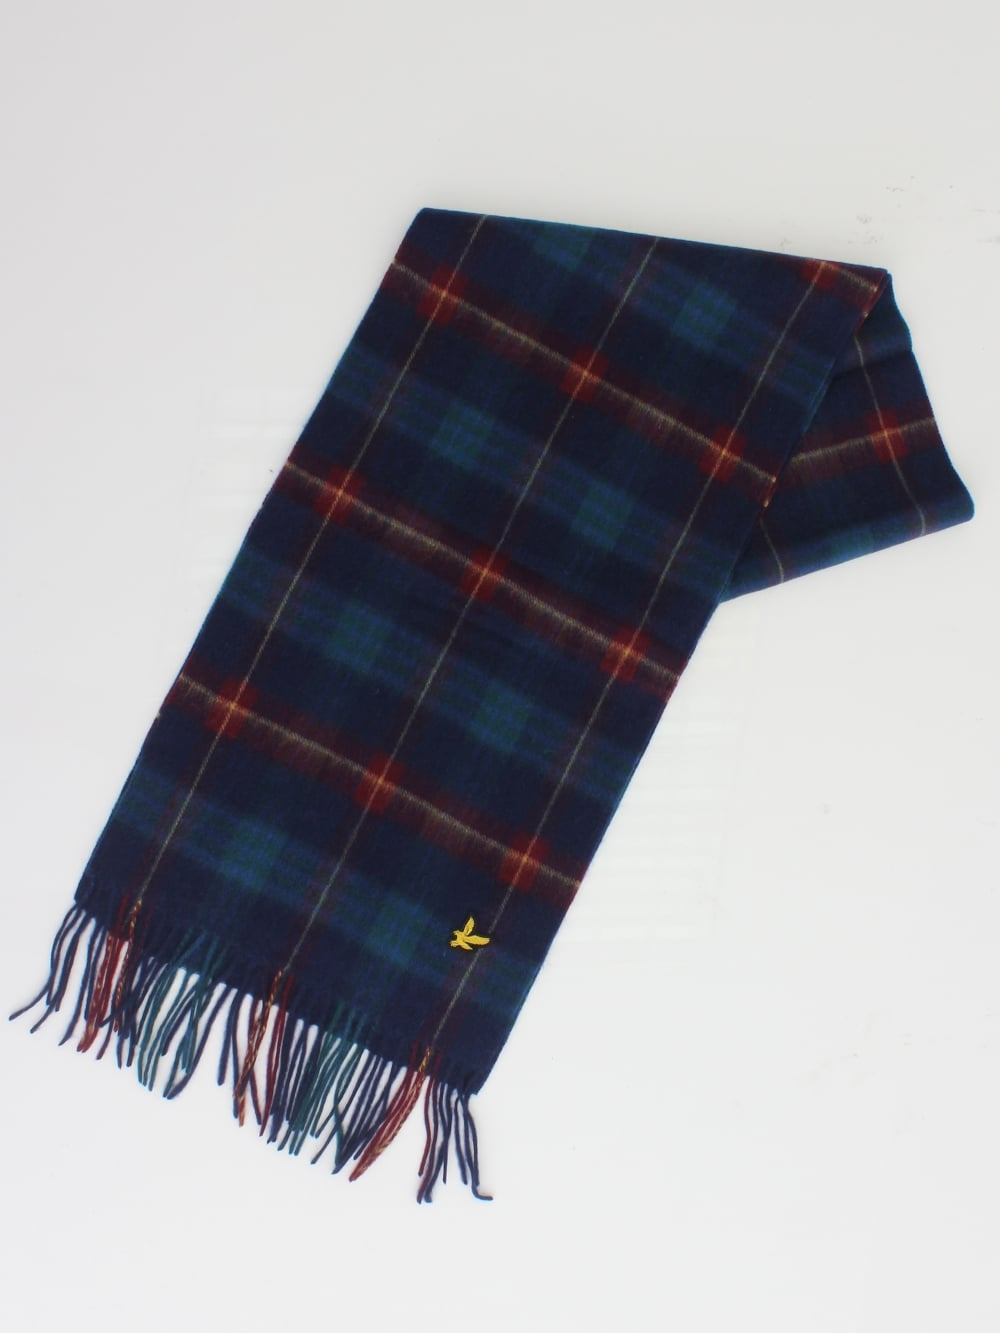 tidlös design grossisthandlare bra priser Lyle & Scott Woven Tartan Scarf in Navy - Northern Threads